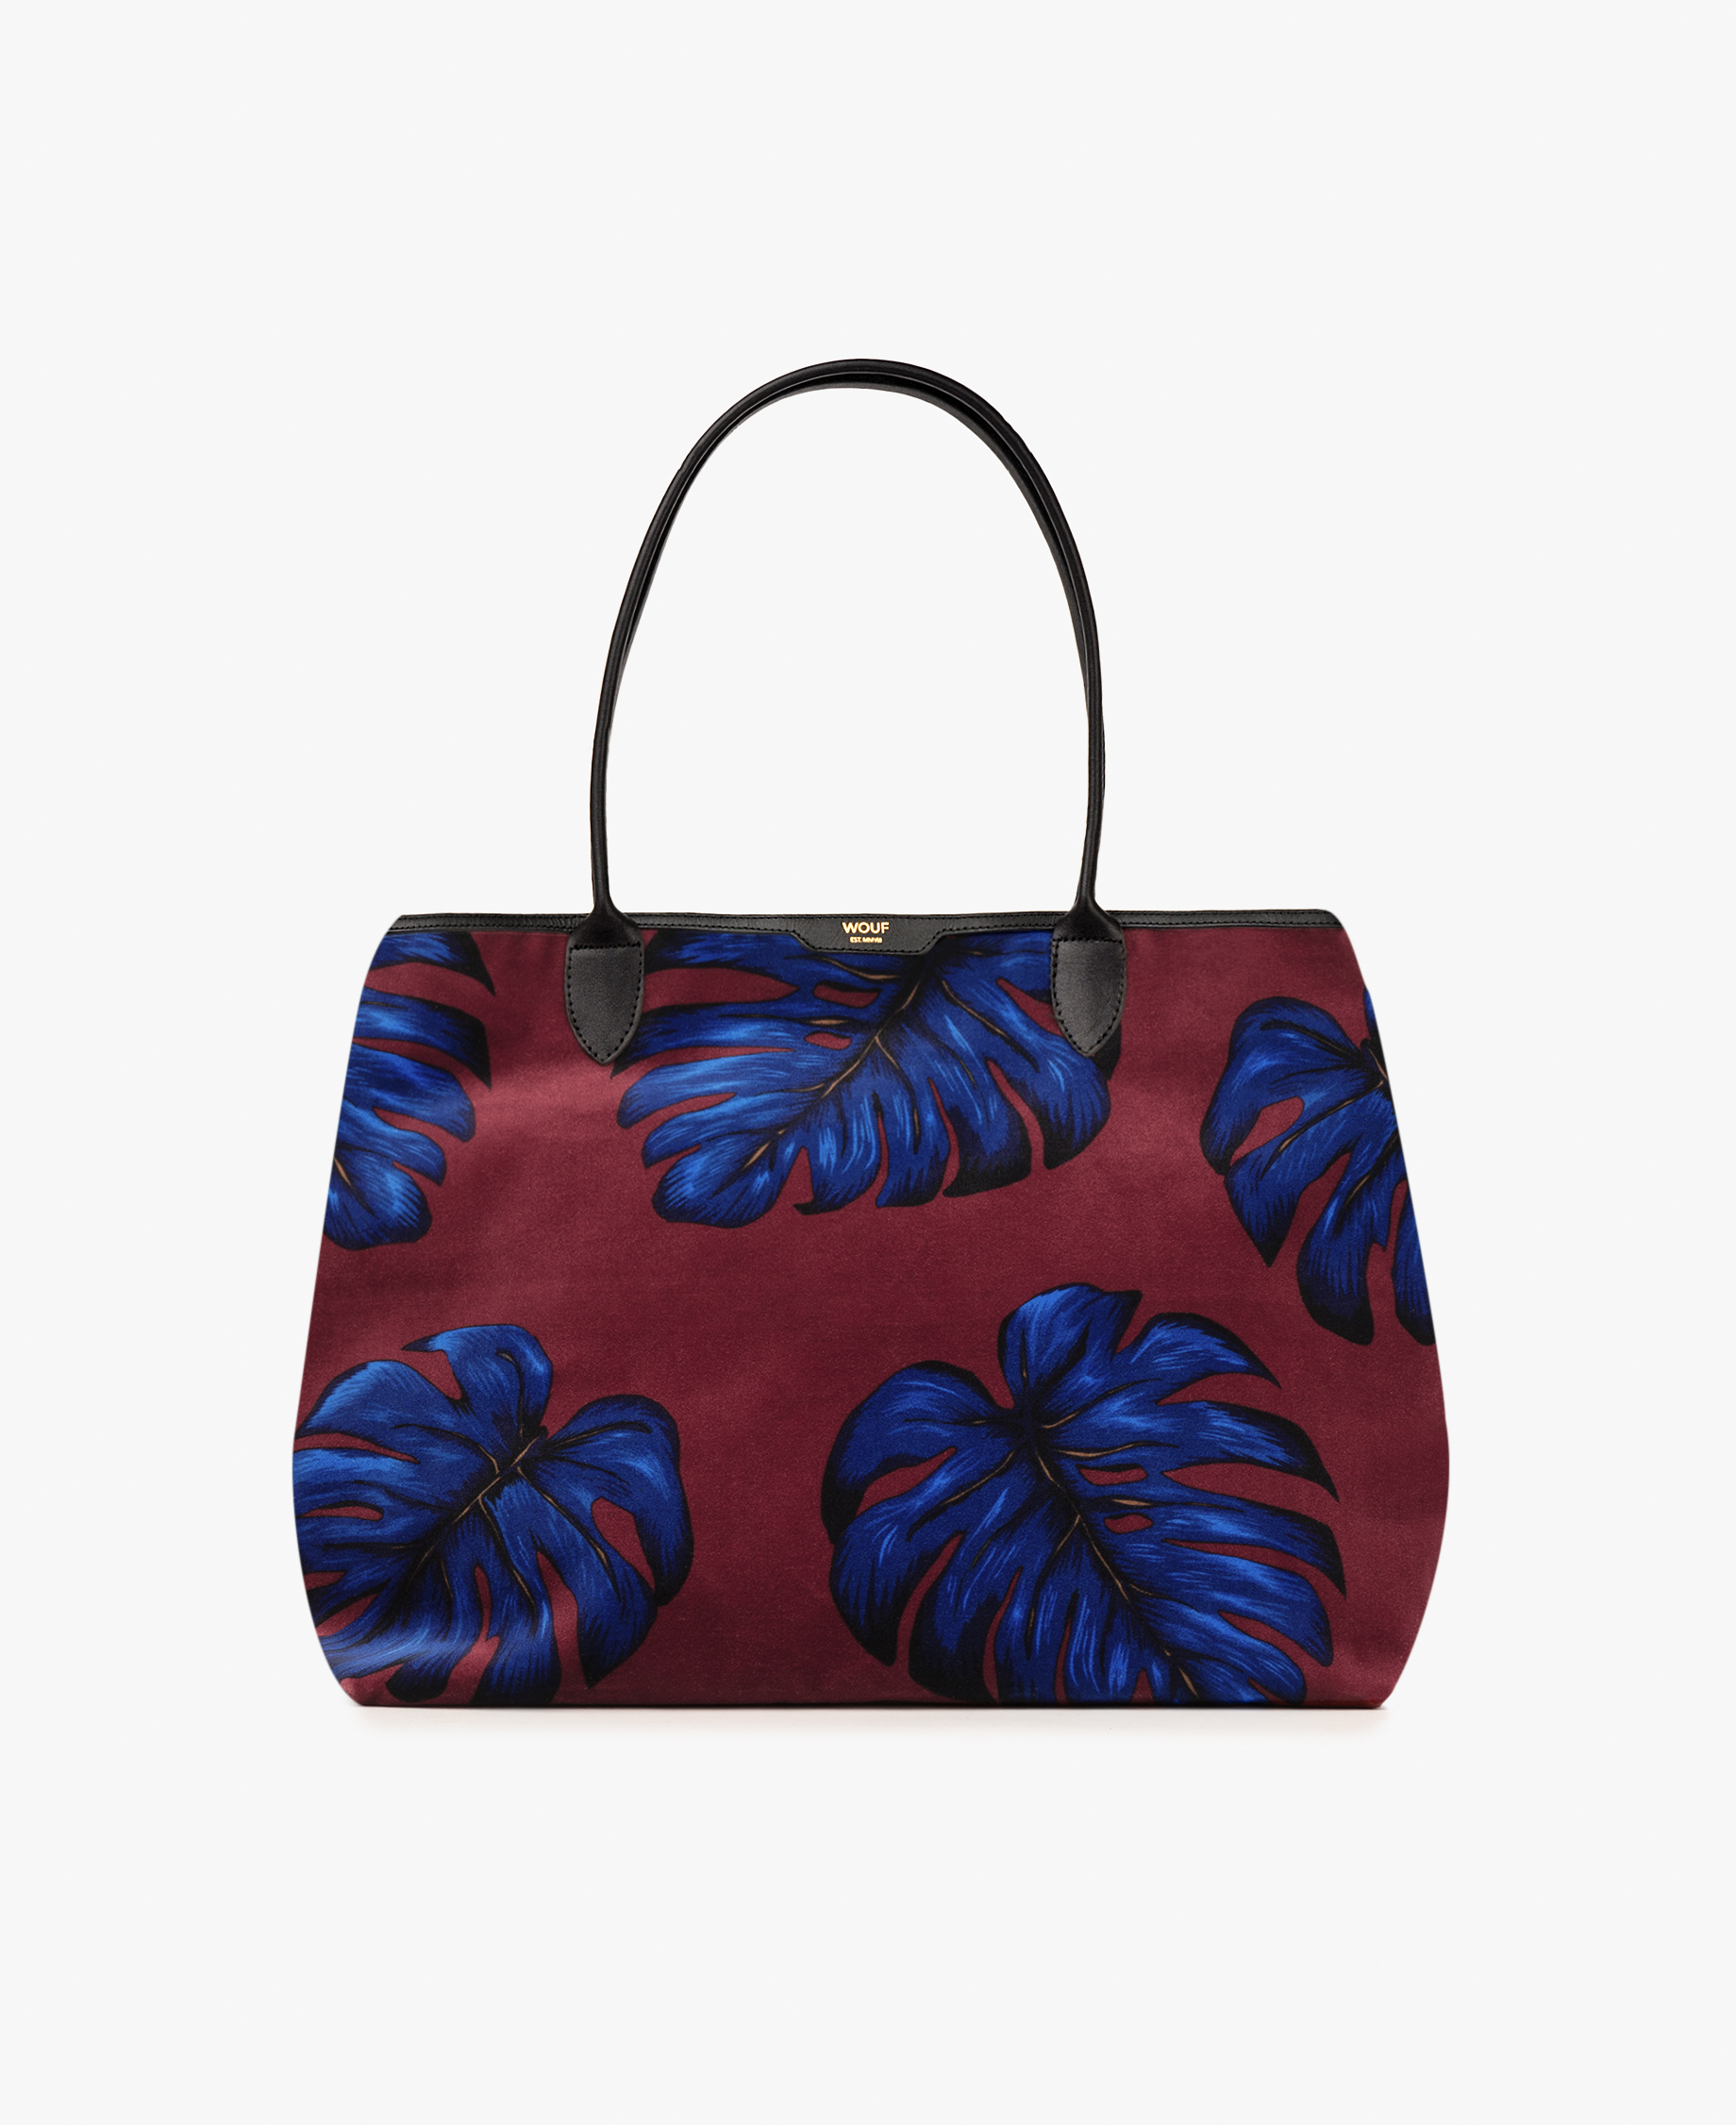 chic Woman tote bag